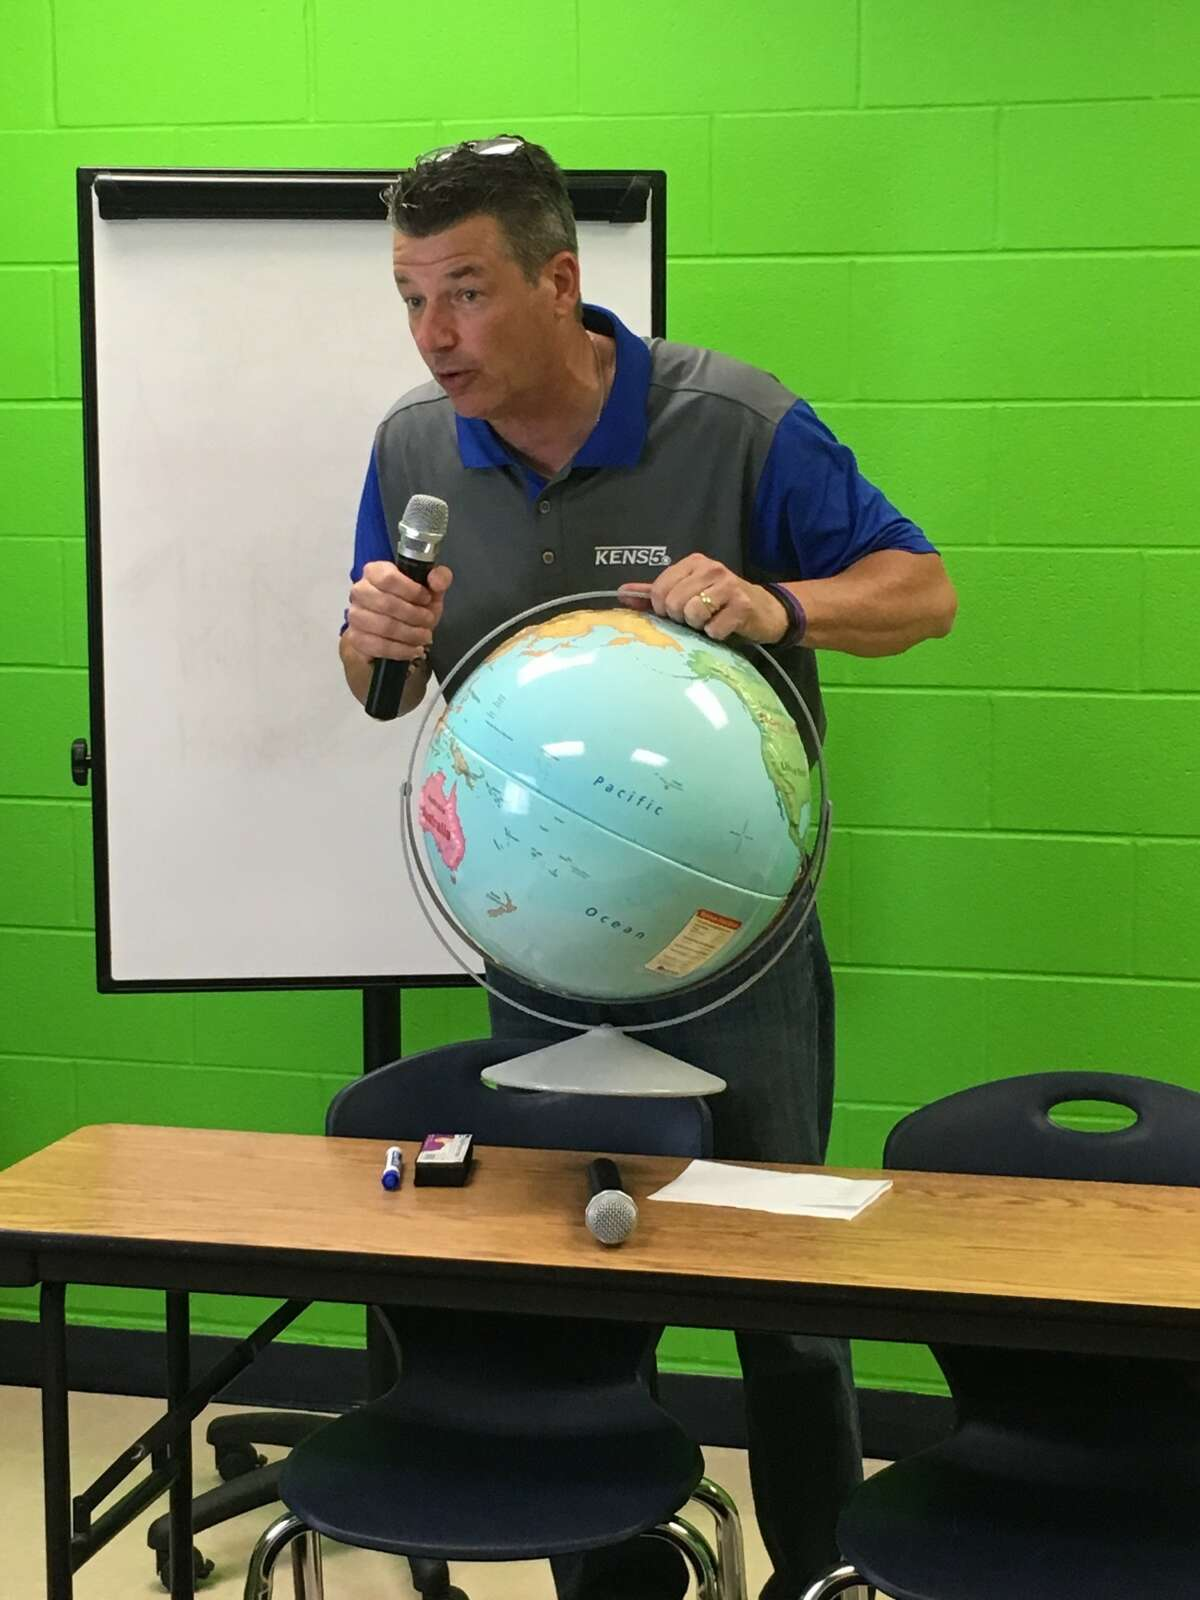 Even when he's not on air, Bill Taylor is still talking weather and science.